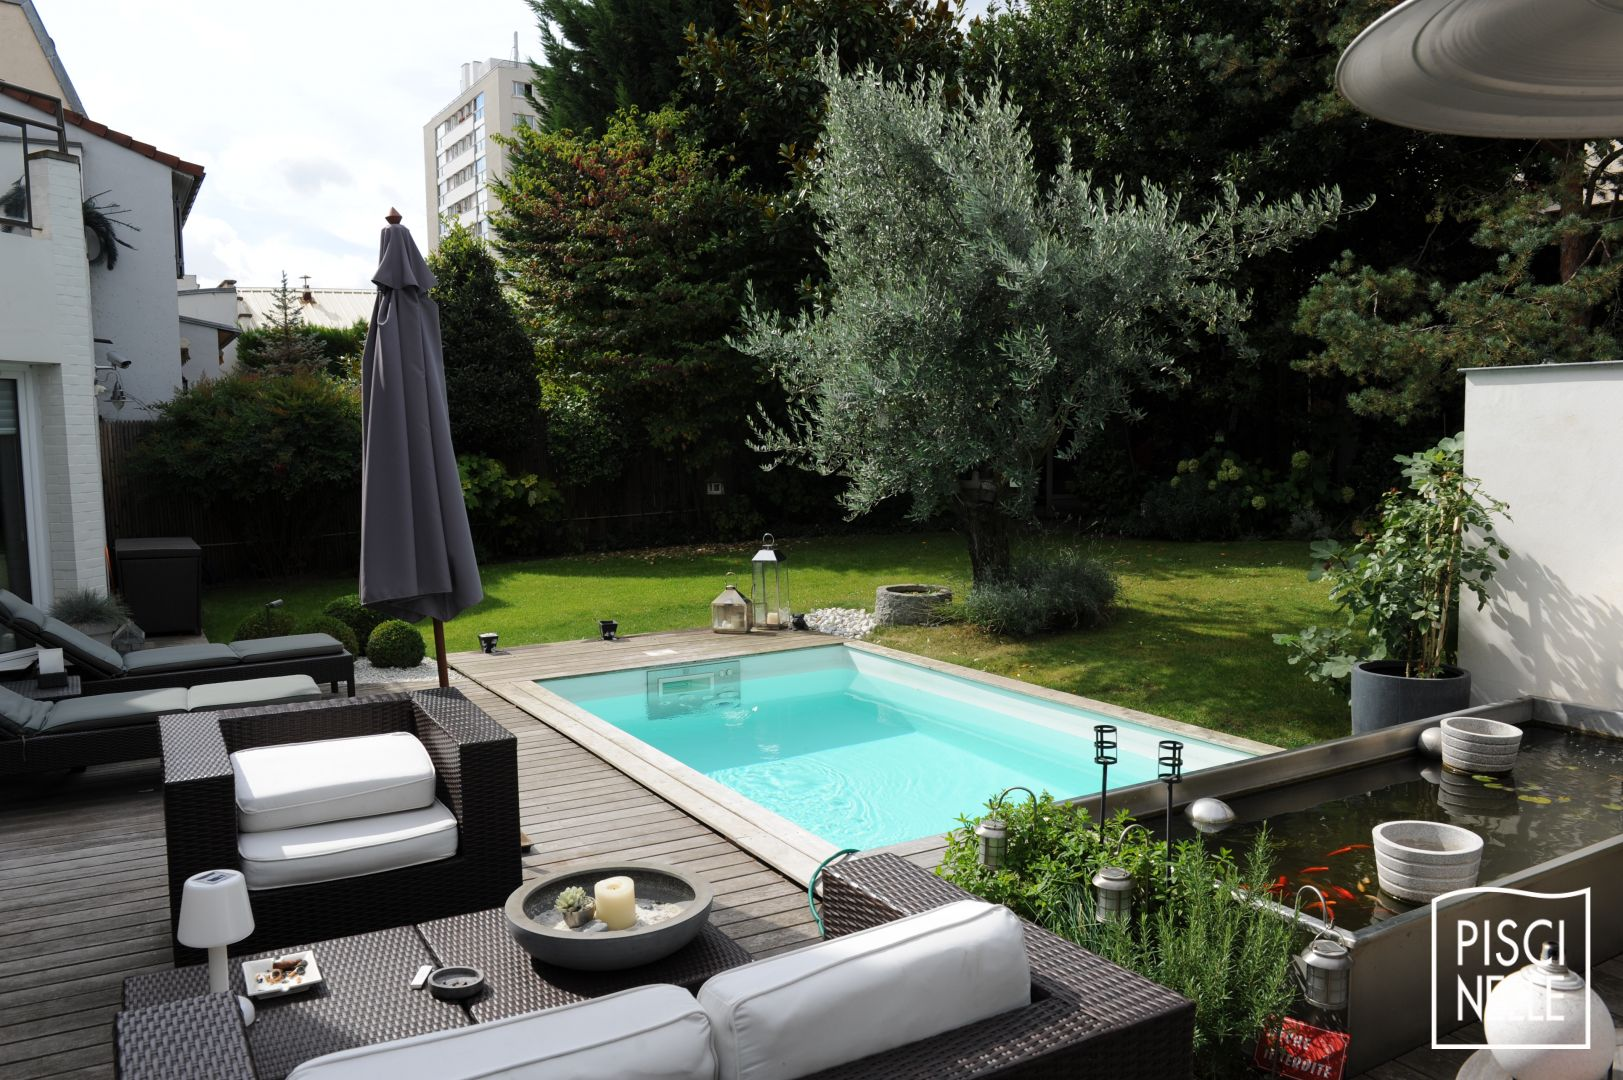 reportage photo petite piscine de centre ville suresnes piscinelle. Black Bedroom Furniture Sets. Home Design Ideas